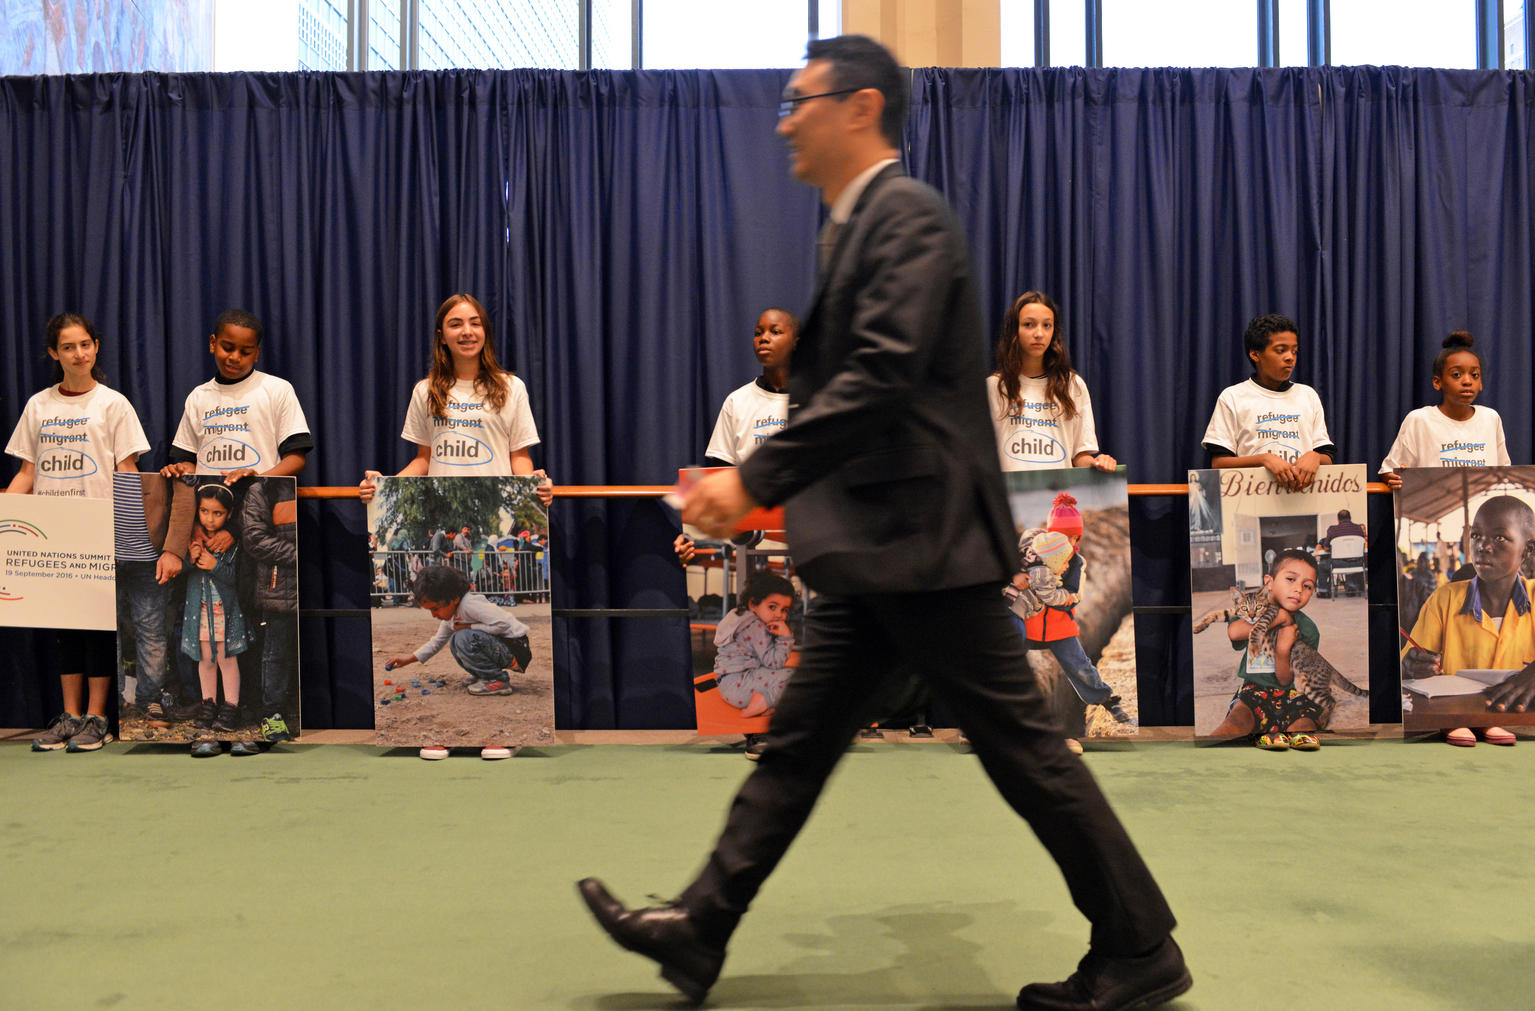 On 19 September 2016, children from the East side Middle School and P.S 119 Amersfort hold pictures of refugee and migrant children as they greet world leaders entering the General Assembly Hall to remind them to prioritize the rights of children during the high level plenary on refugees and migrant at the United Nations Headquarters in New York City.On the morning of the United Nations? first ever summit on refugees and migrants, the U.S. Fund for UNICEF and others are reminding world leaders to put #ChildrenFirst as they address the largest humanitarian crisis of displacement since World War II.  An estimated 50 million children have been uprooted from their homes by conflict, violence, poverty, extreme weather and drought. Though many things divide nations and peoples, most can agree that children are innocent and deserve the opportunity to grow to their full potential. Though called by many names - refugees, migrants, stateless, internally displaced - they are children first.